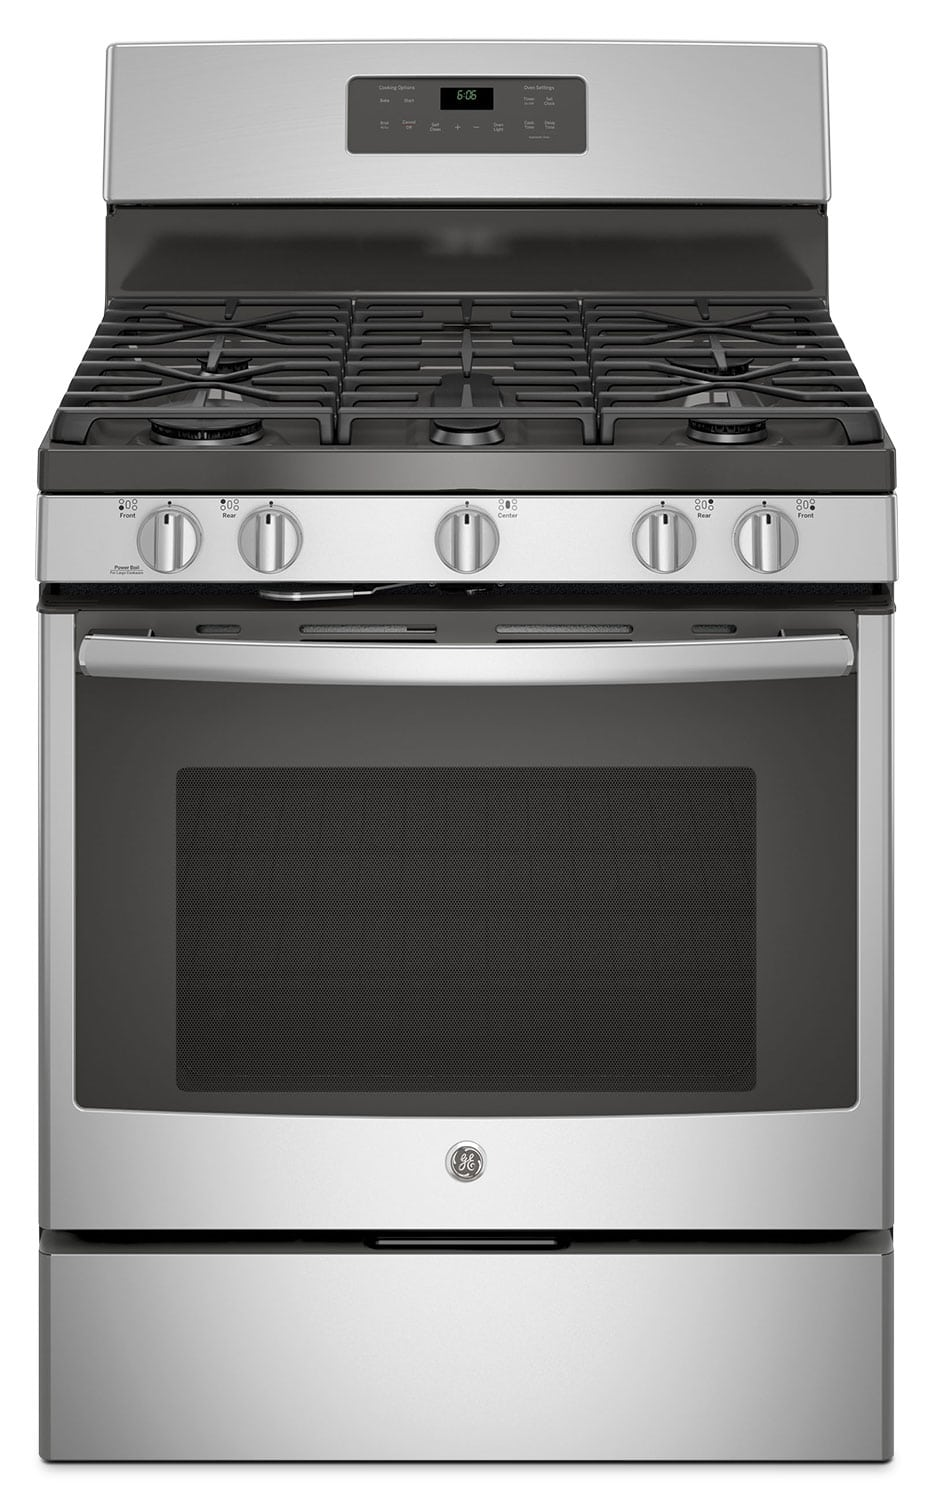 Cooking Products - GE 5.0 Cu. Ft. Freestanding Gas Range – JCGB660SEJSS